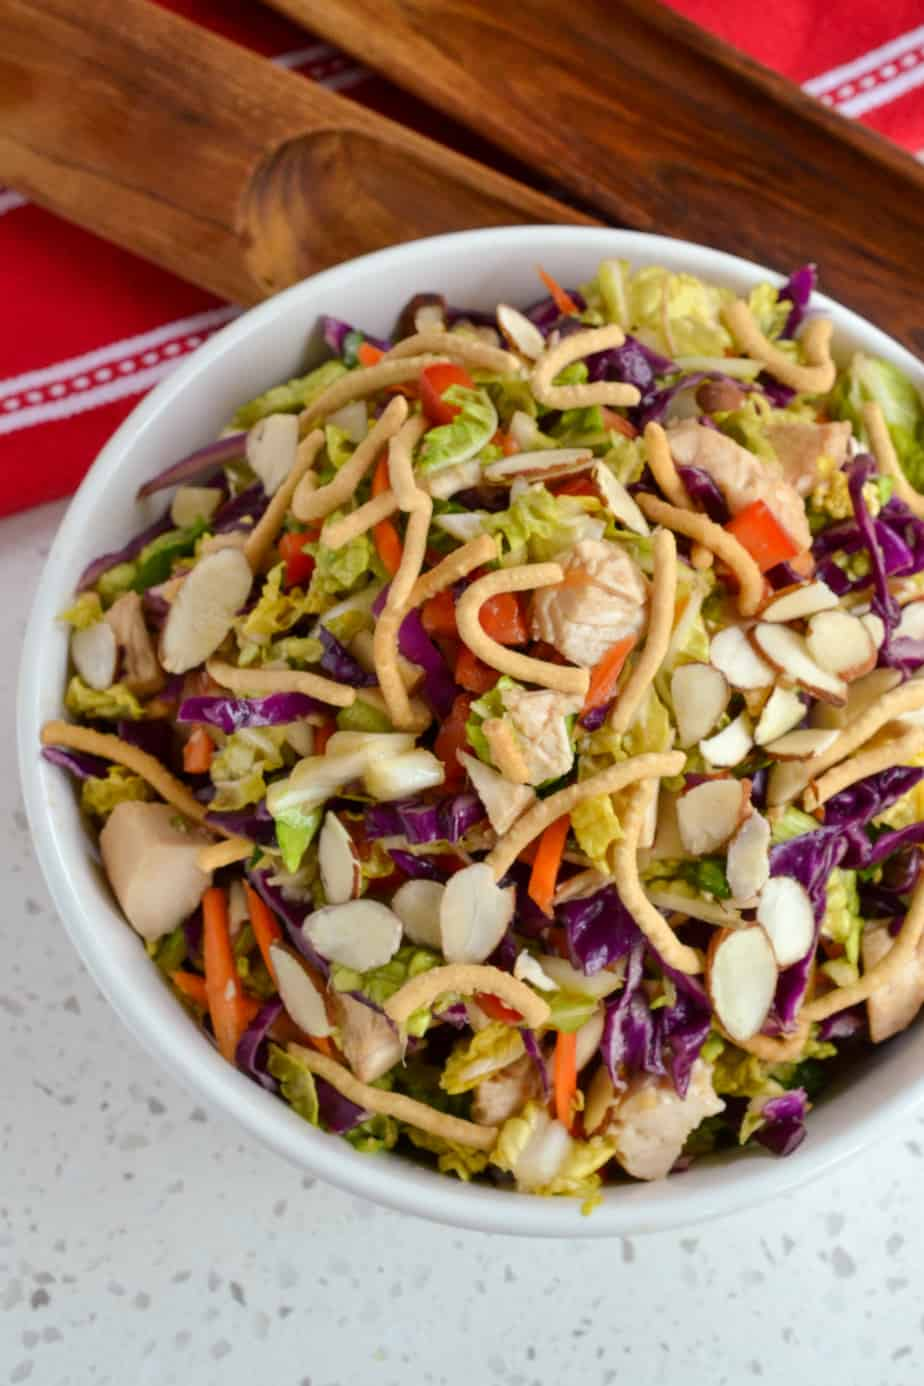 Oriental Chinese chicken salad with almonds, chow mein noodles, carrots, and red bell peppers.